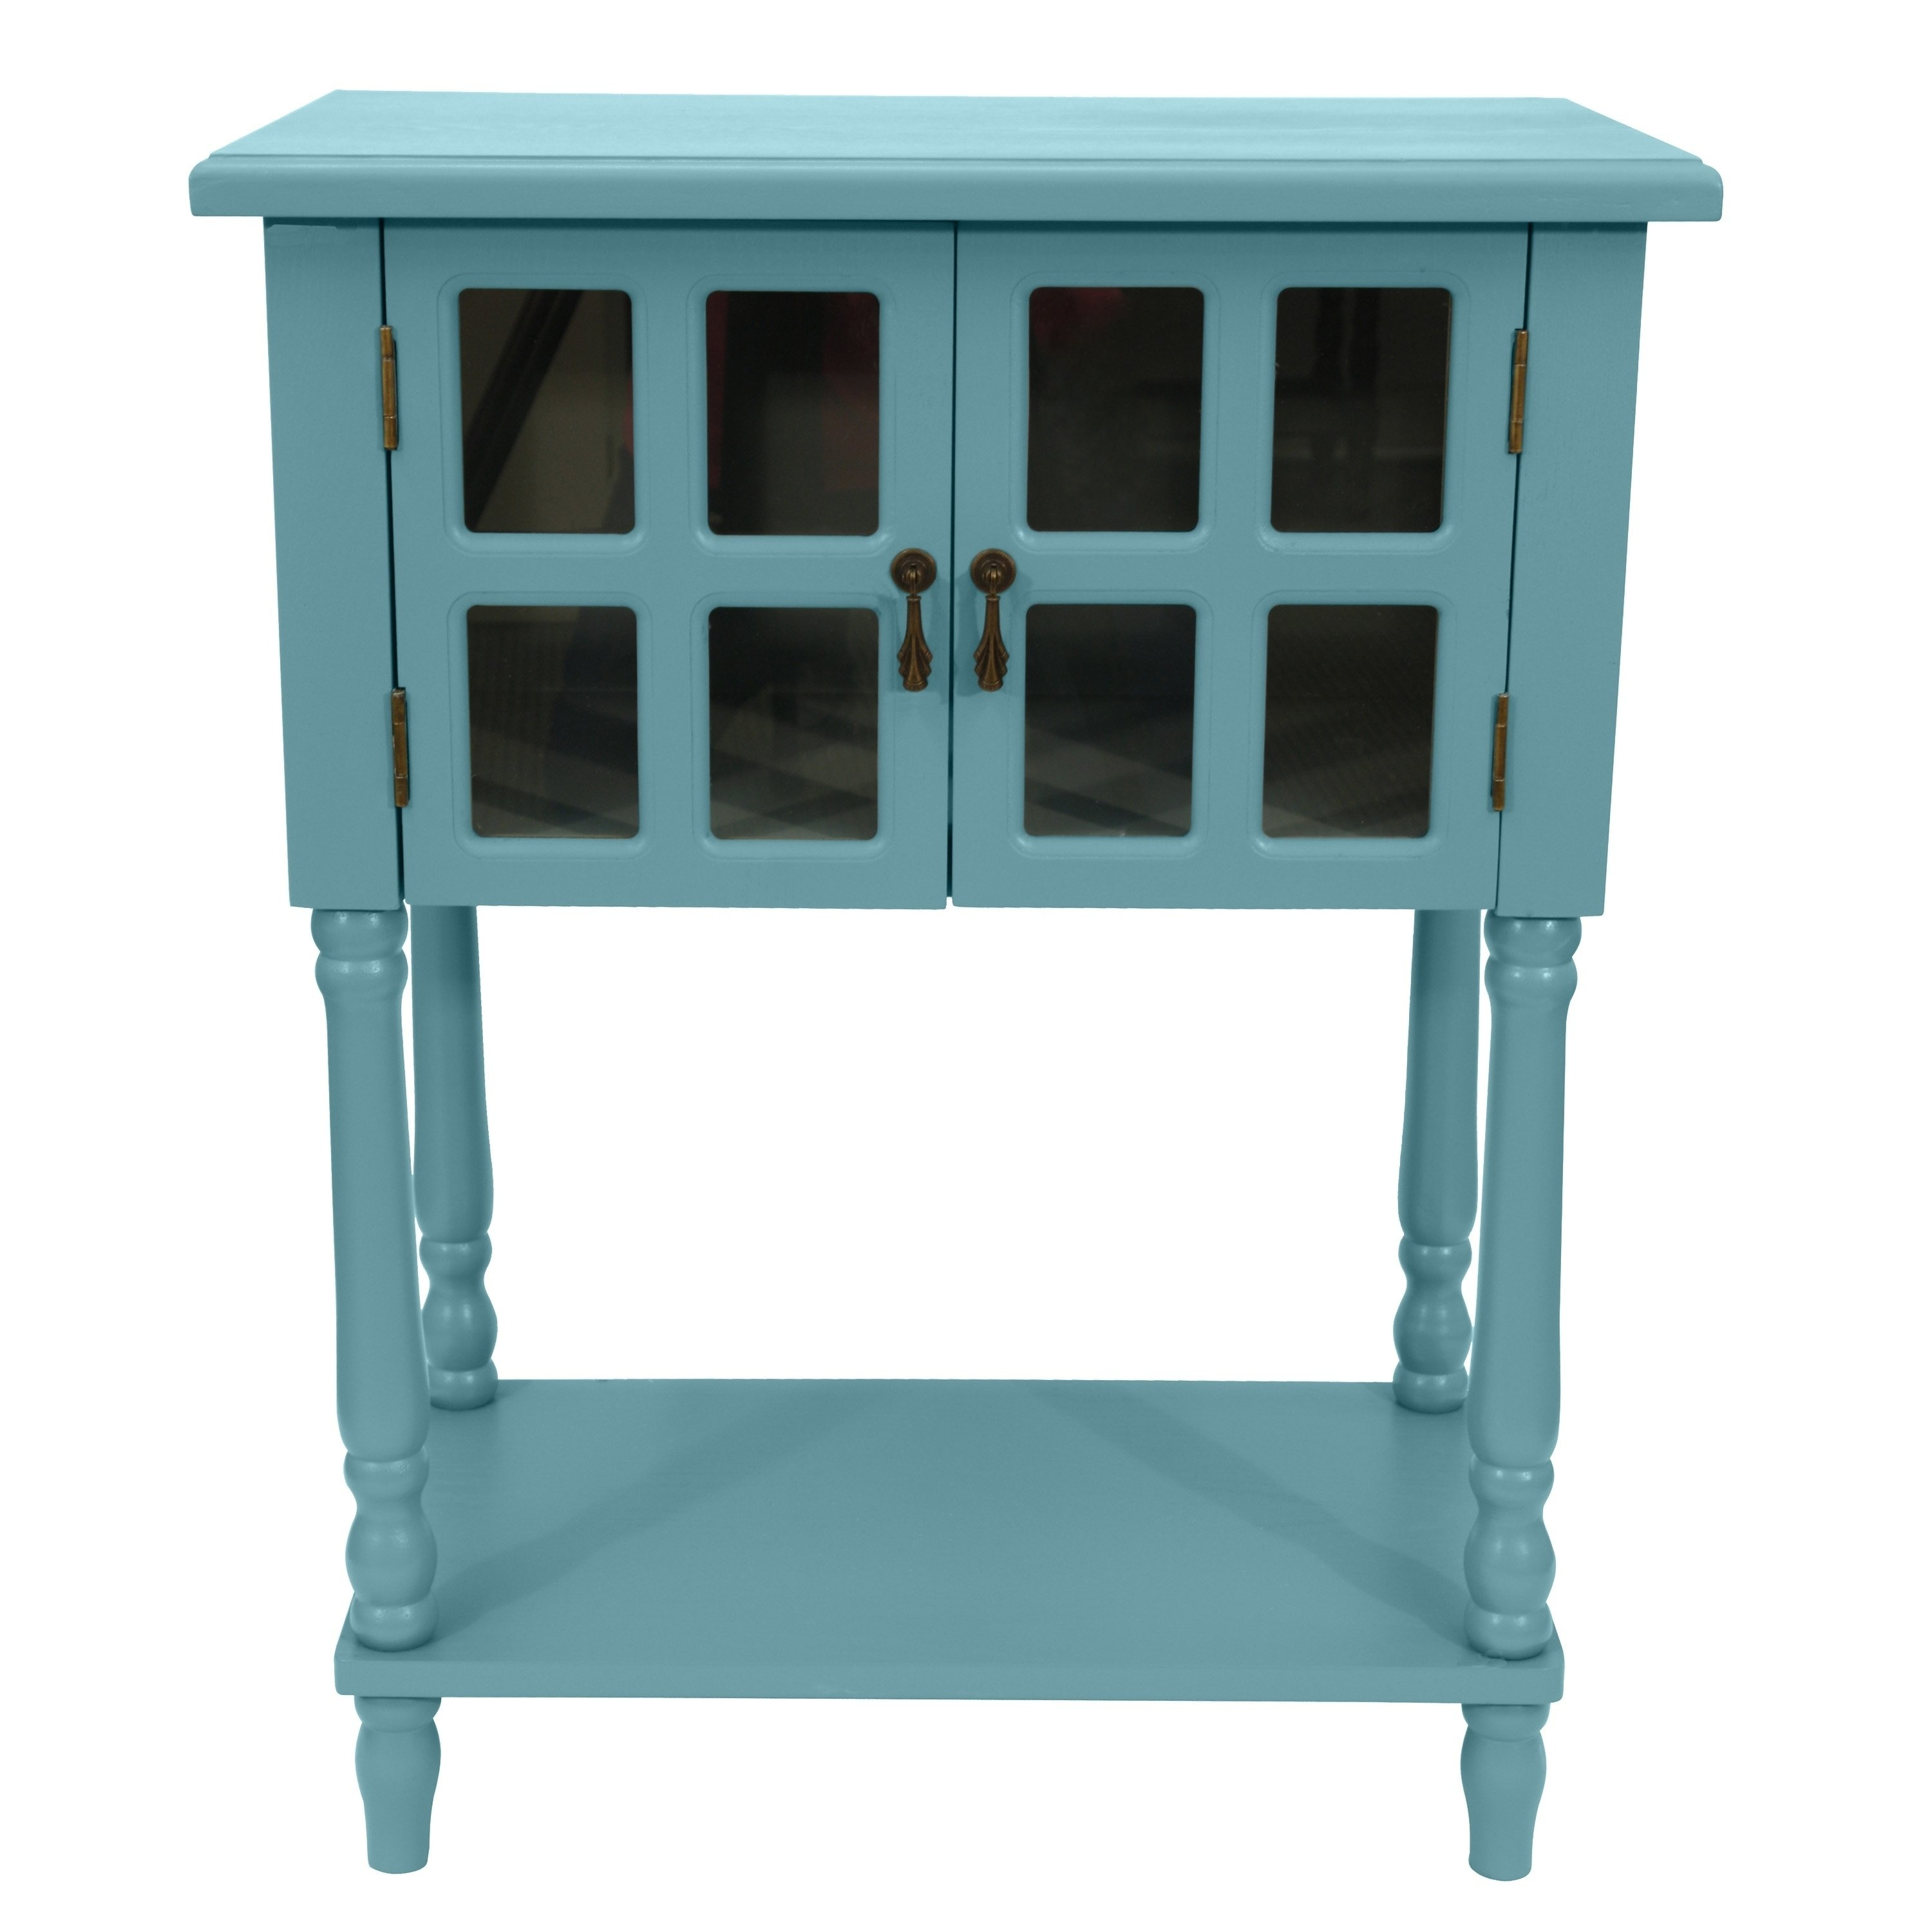 nora glass door accent table free shipping today teal small mirrored nightstand west elm arc lamp oval top coffee catnapper rocker recliner olympia furniture mirror frame marble